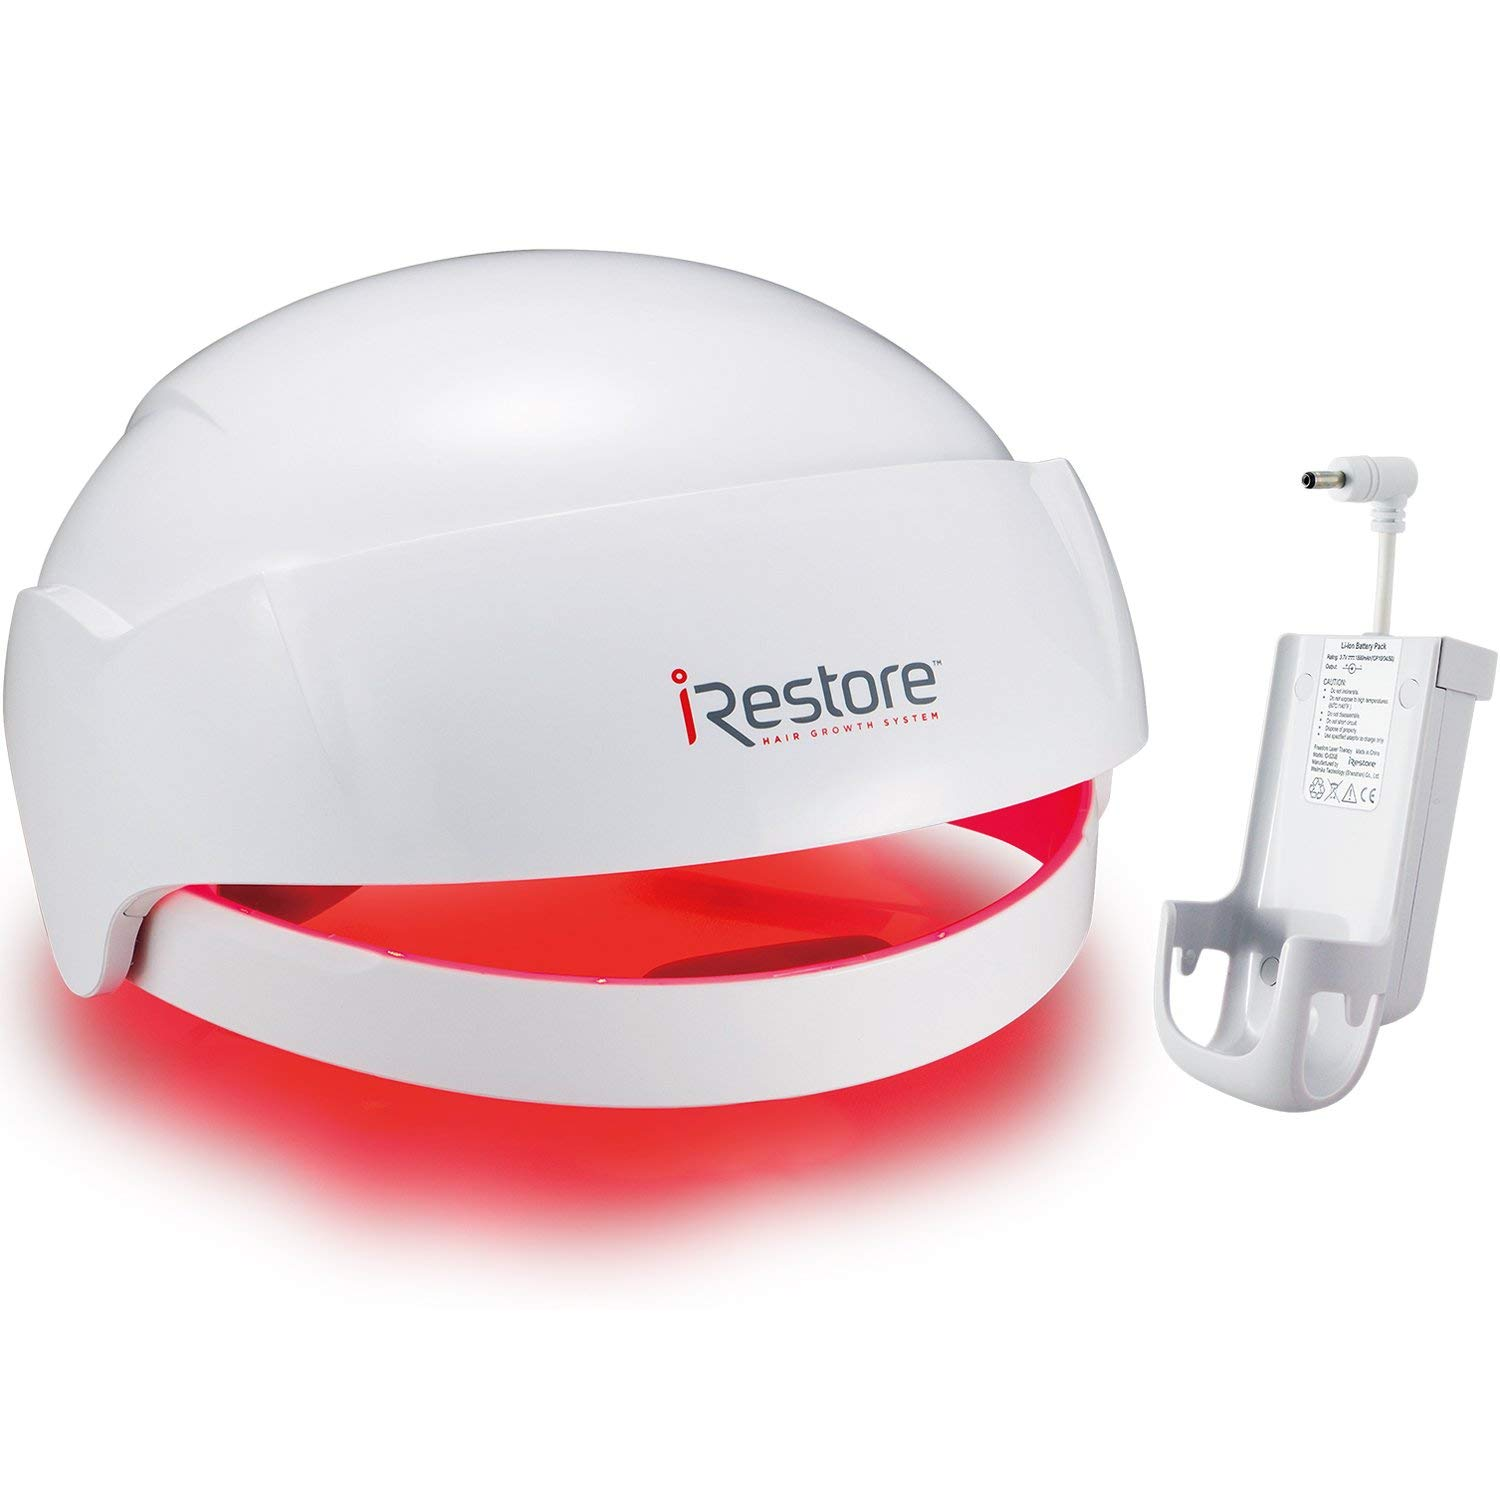 Review of iRestore Laser Hair Growth System